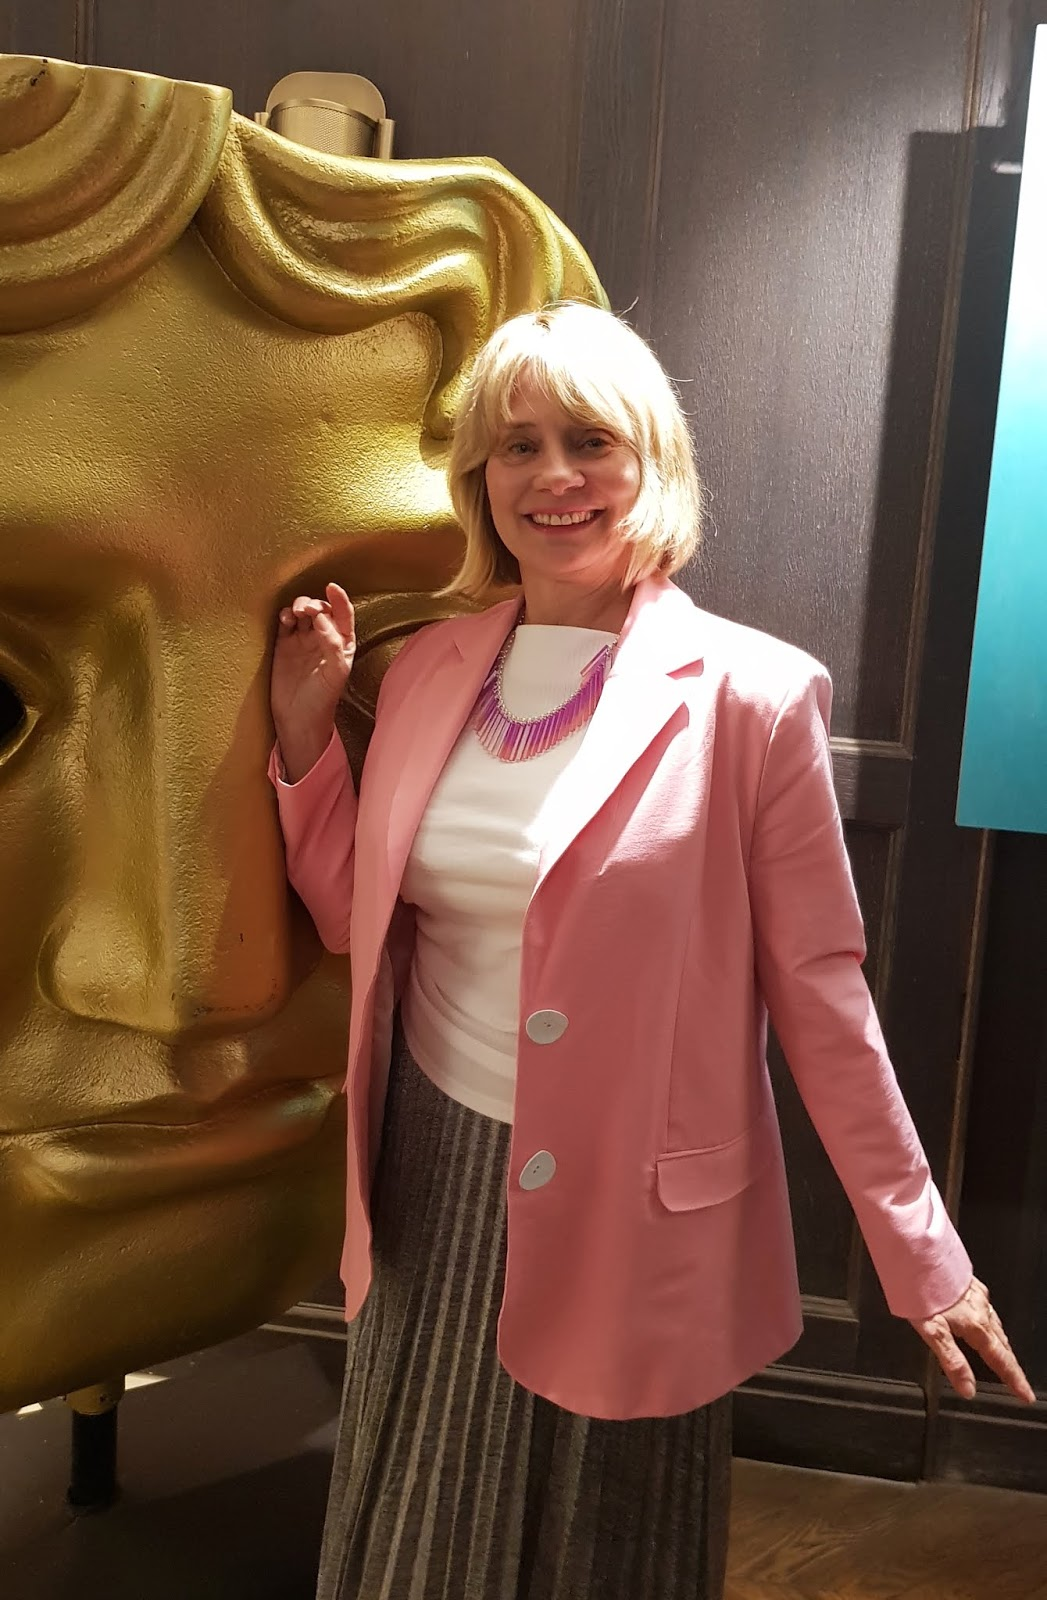 Wearing pink and silver Is This Mutton blogger Gail Hanlon poses with the BAFTA statue